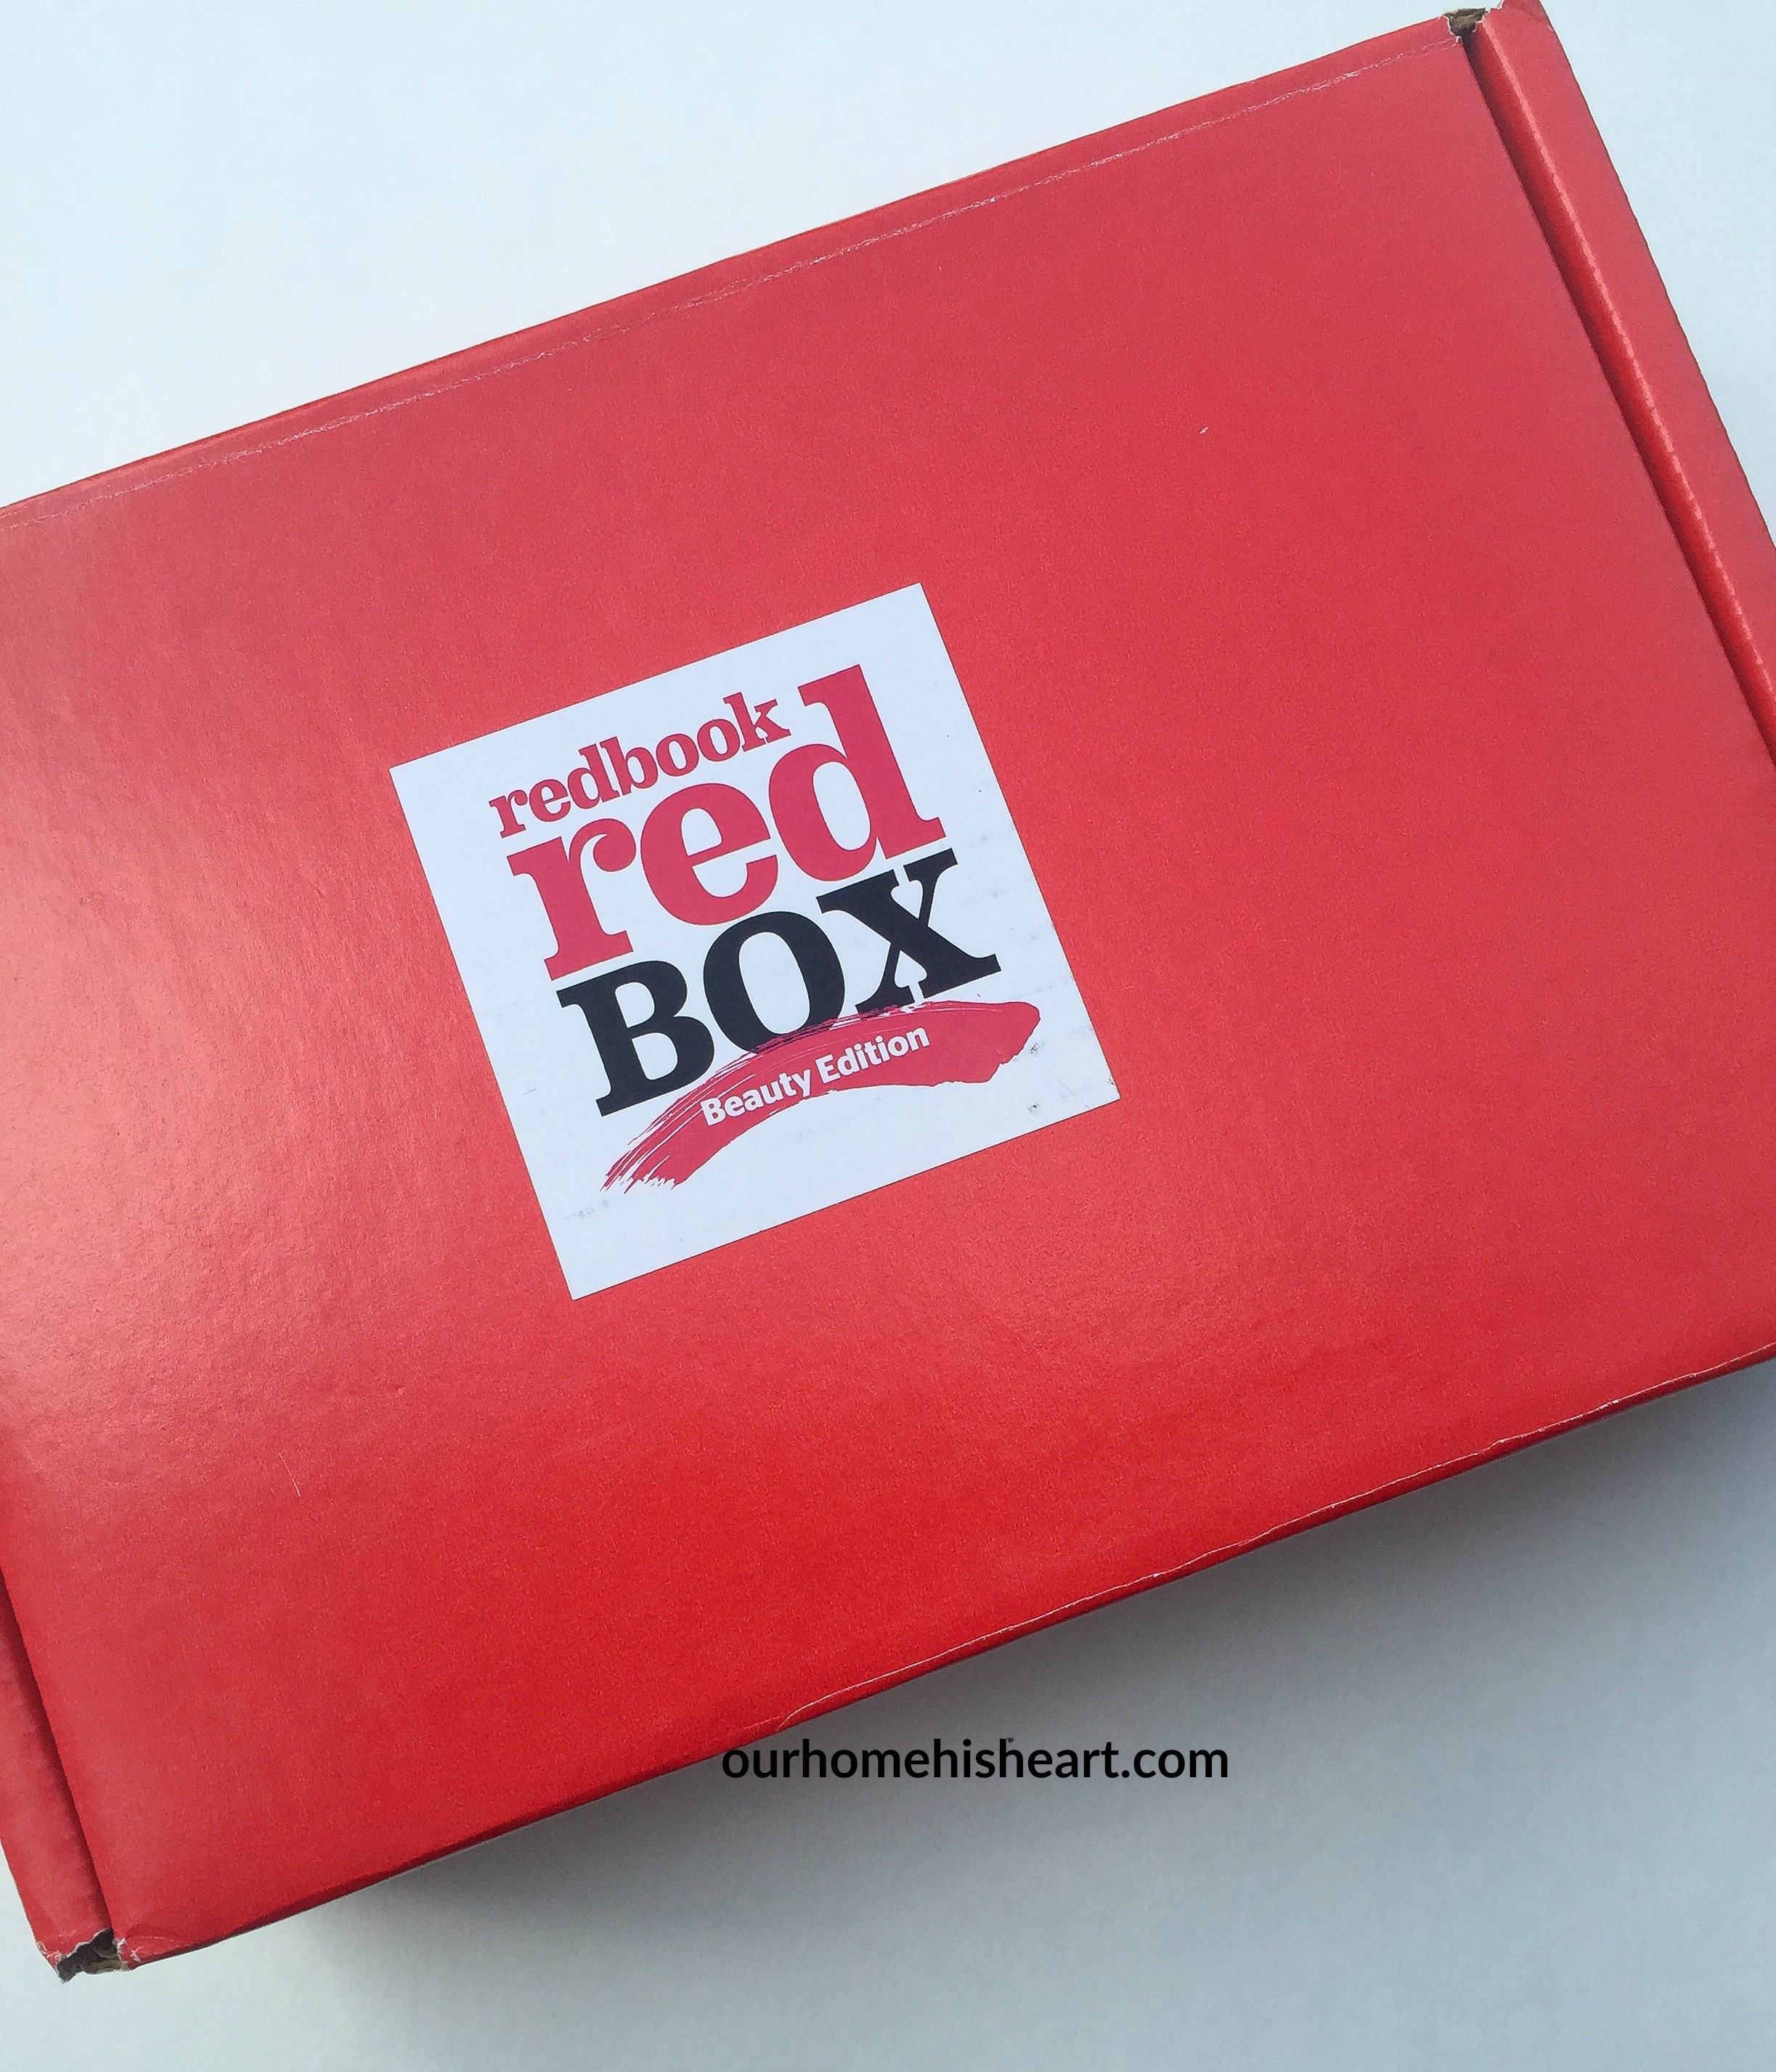 Redbook Red Box Beauty Edition Spring 2016